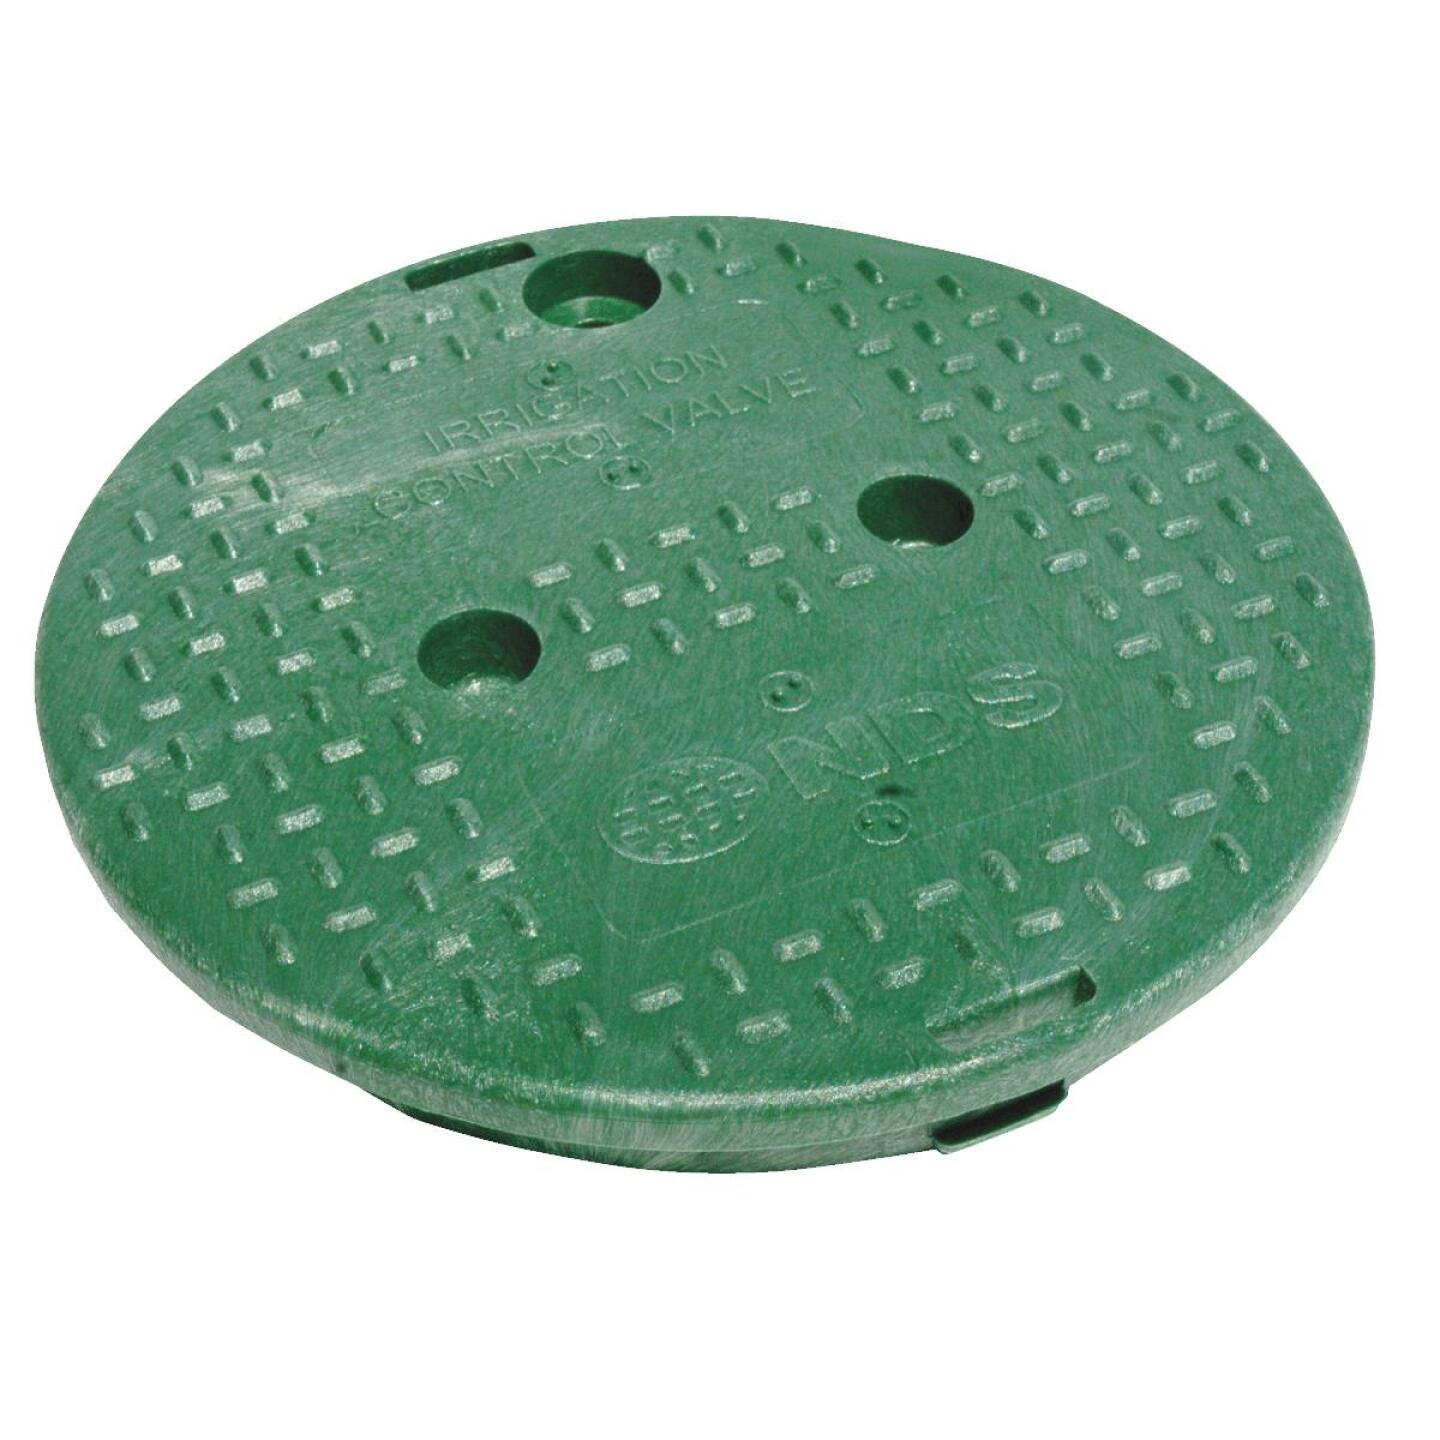 National Diversified 10 In. Round Valve Box Cover Image 1